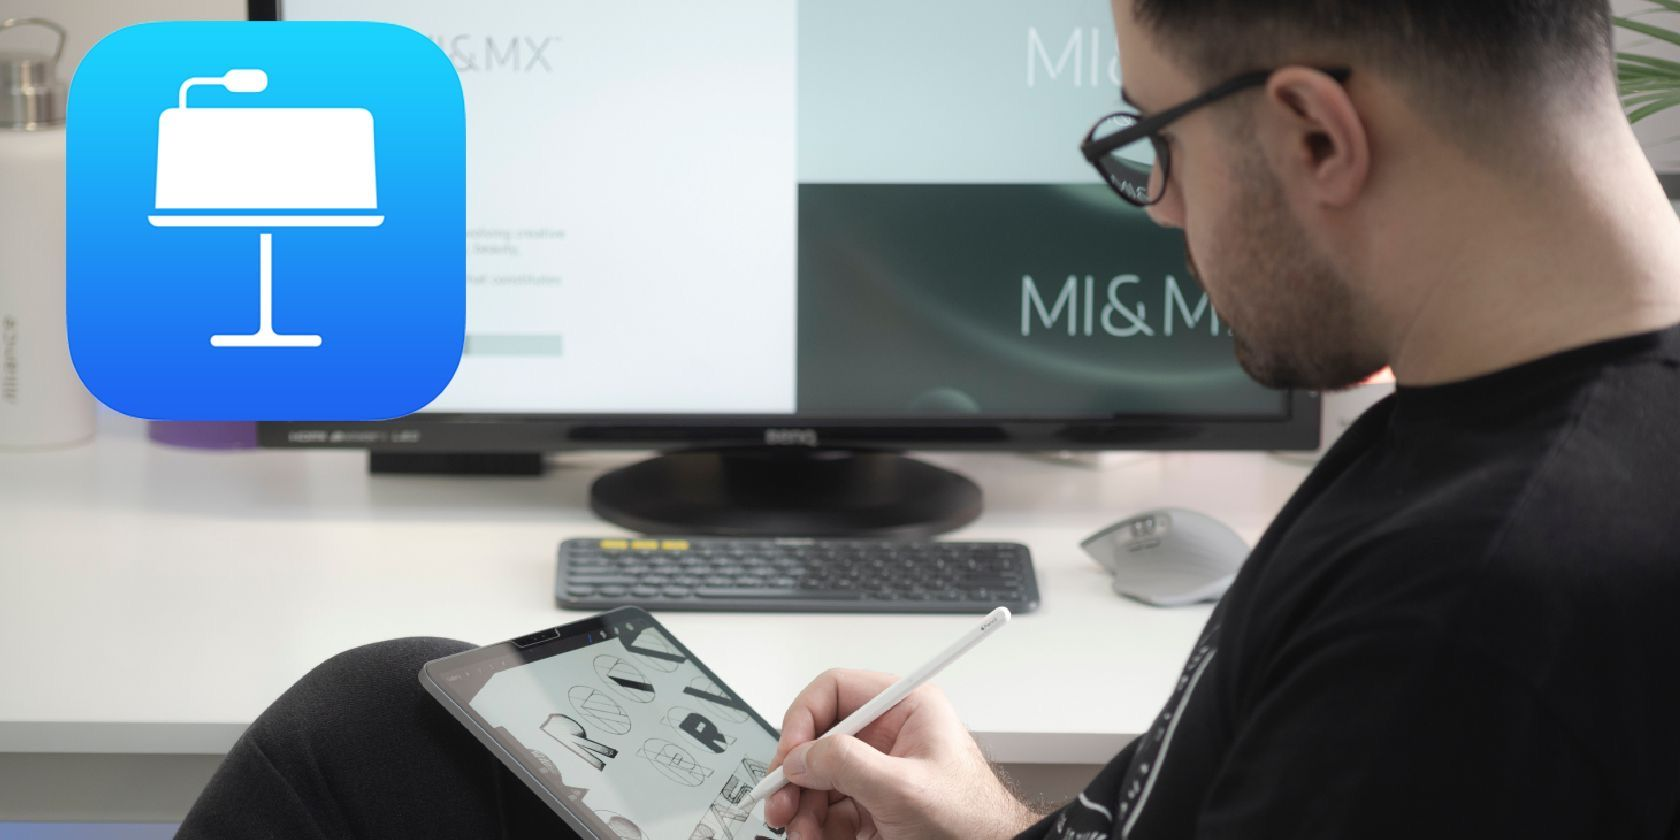 How to Use Keynote on iPad to Create Simple Video Animations